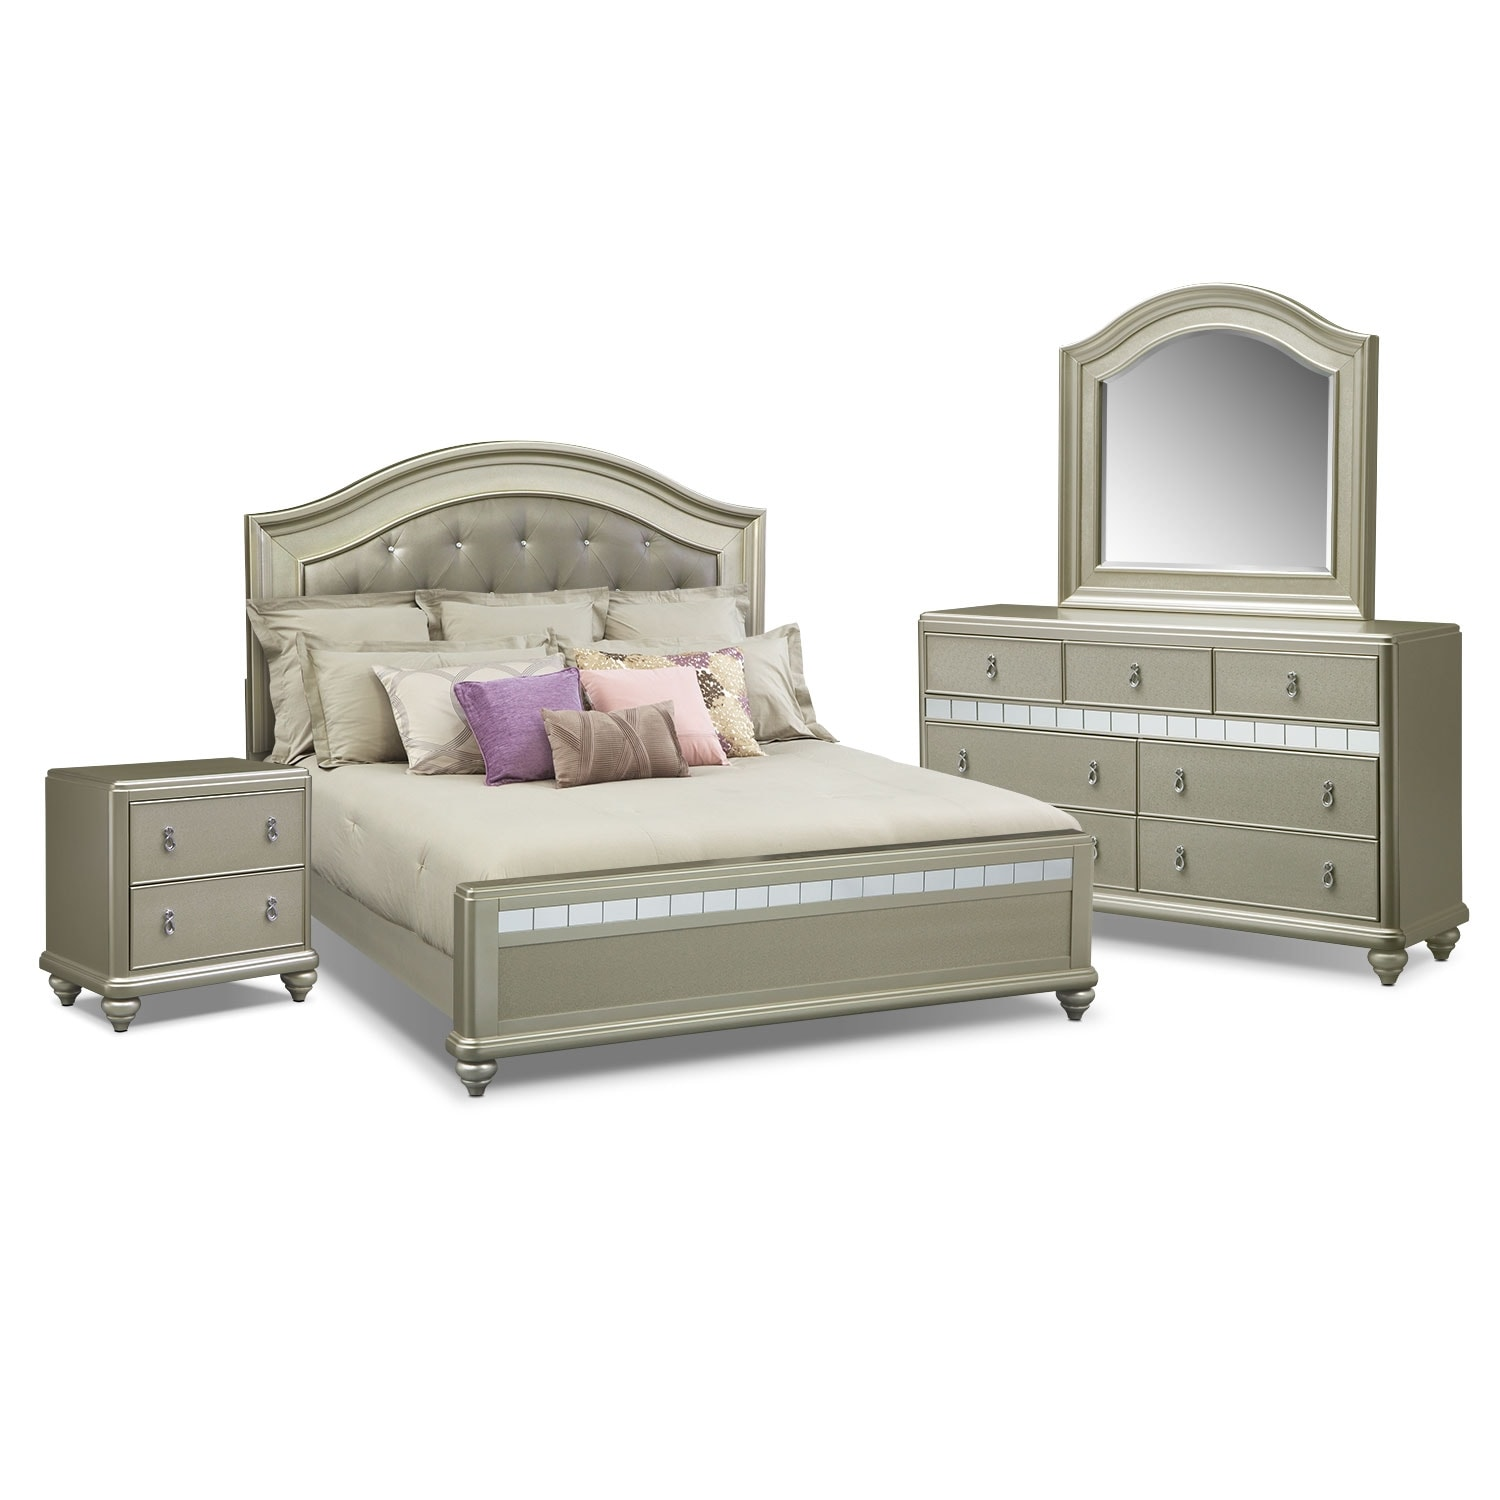 Bedroom Furniture - Serena King 6-Piece Bedroom Set - Platinum